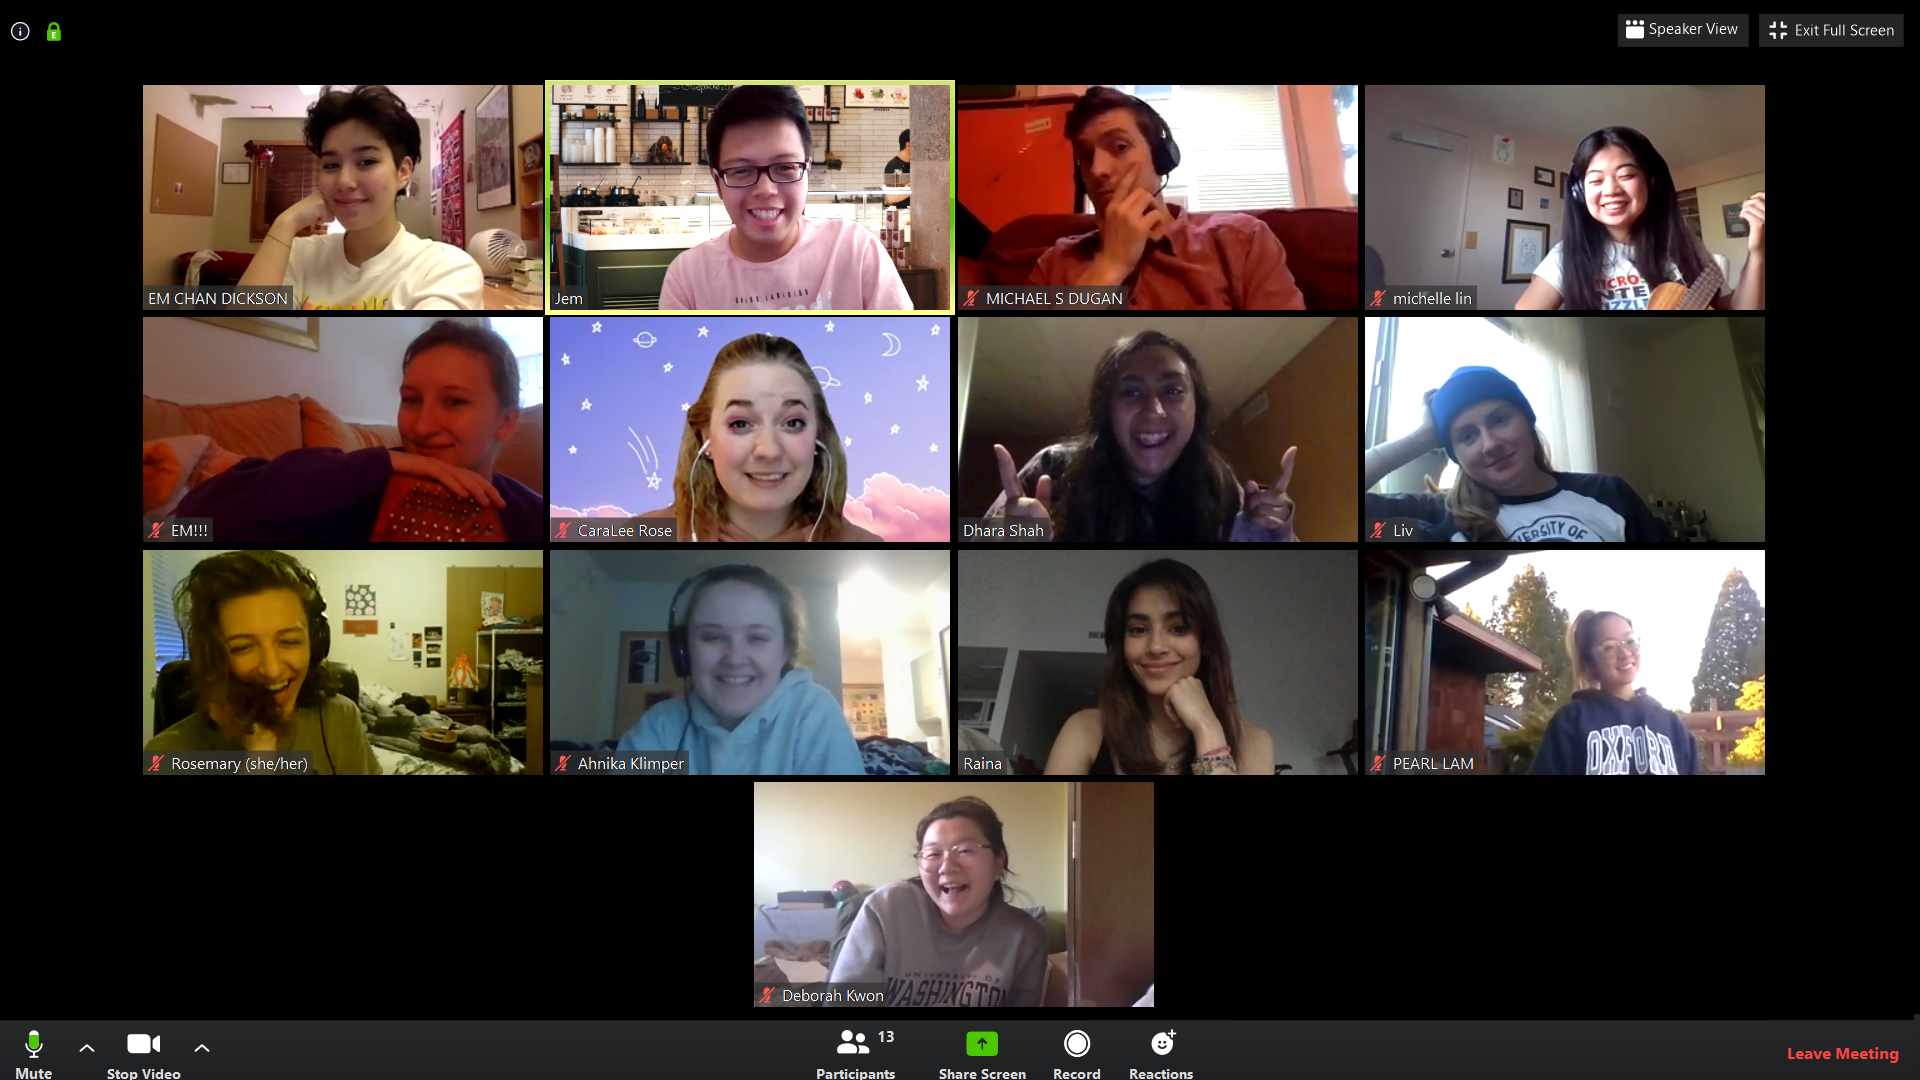 an image of the executive board members conducted through Zoom